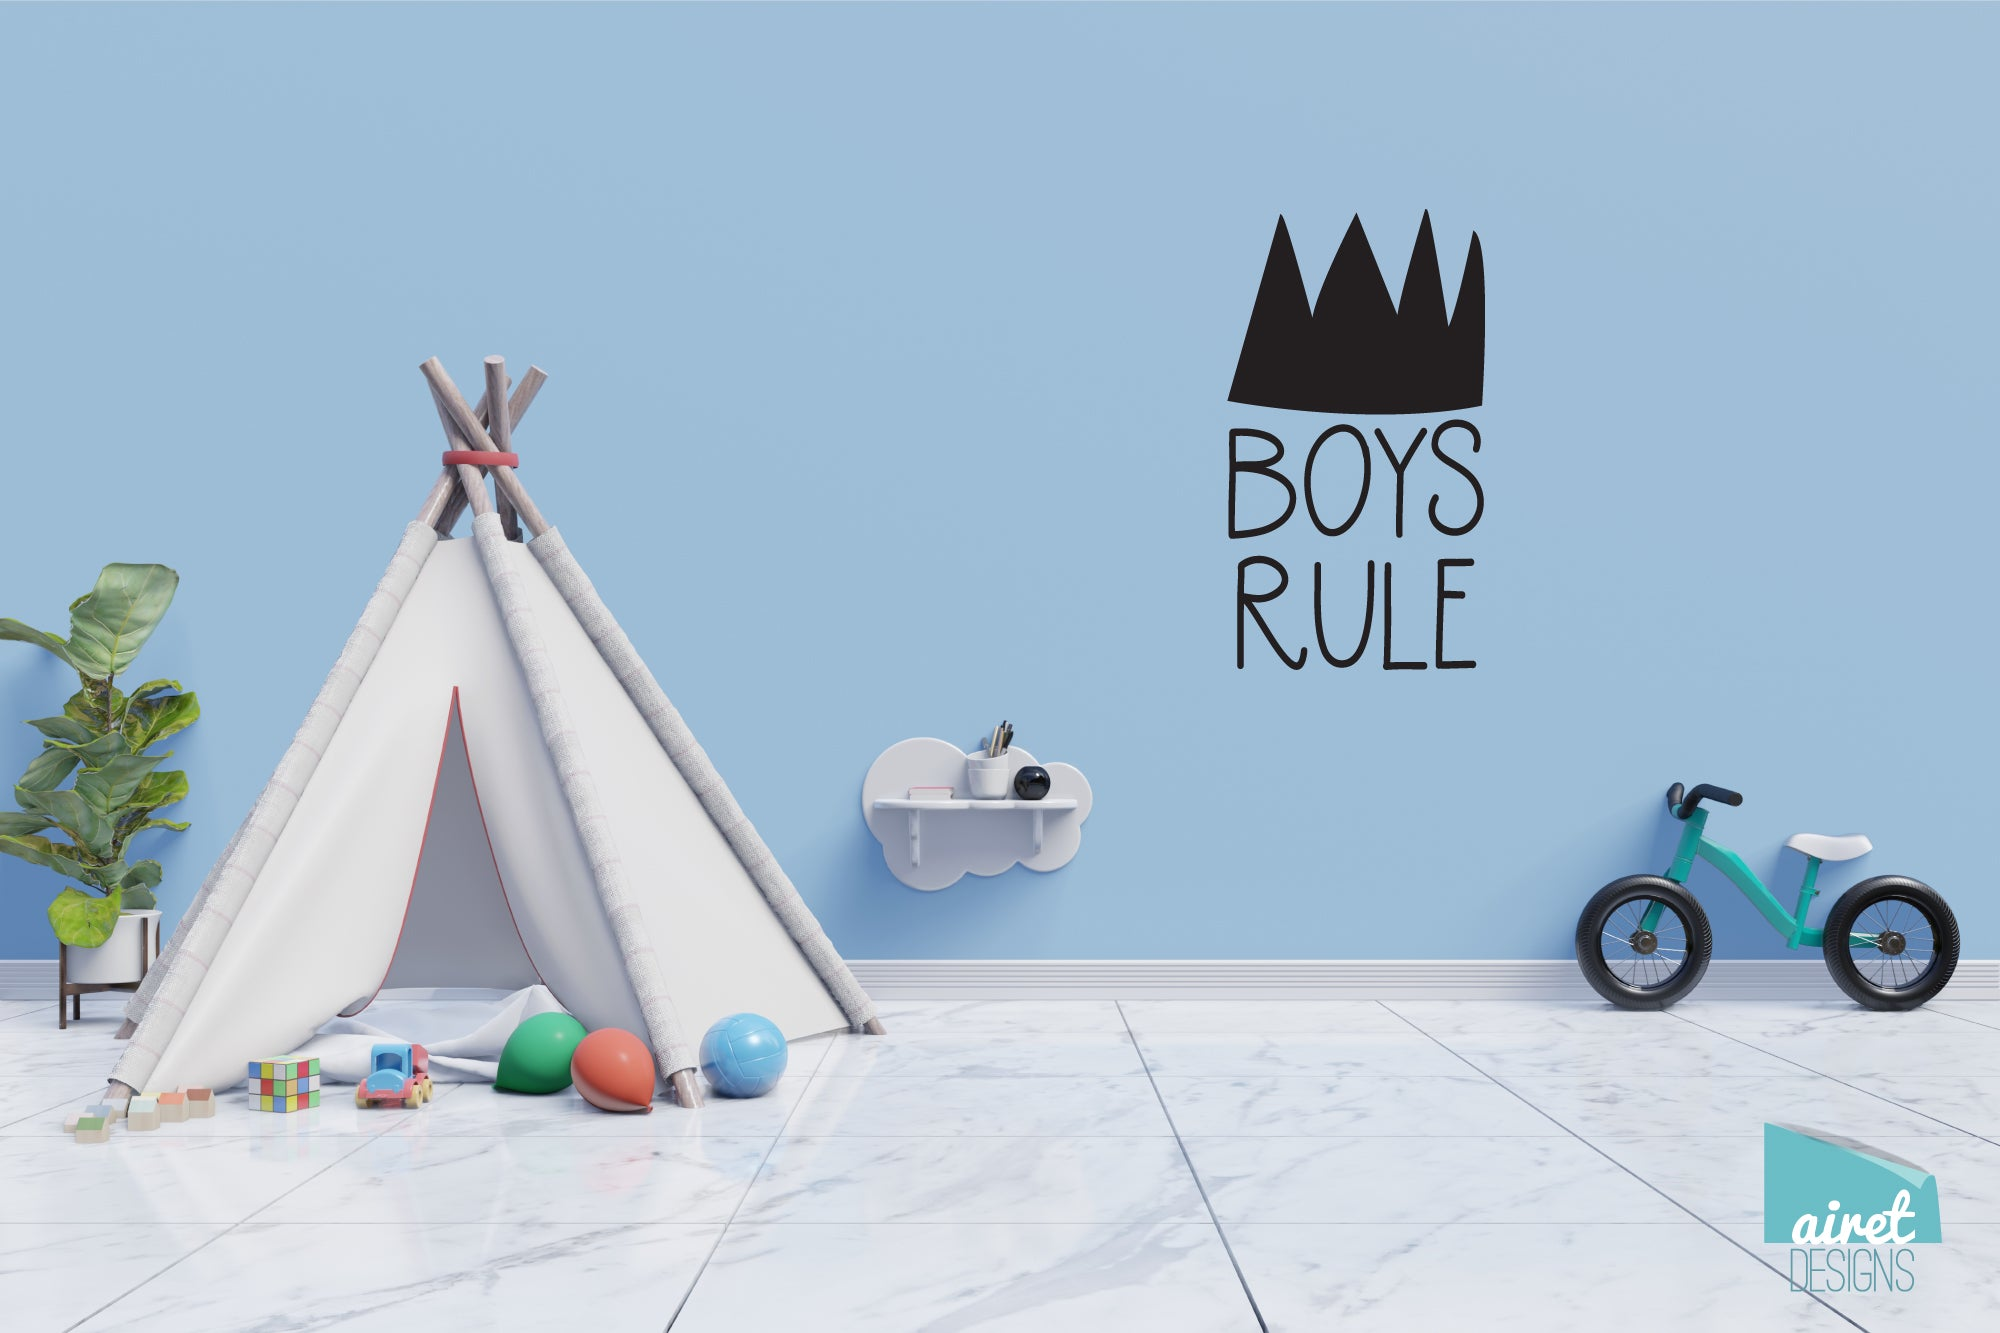 Boys Rule Crown - Vinyl Decal Wall Art Decor Sticker - Nursery Baby Newborn Kid Boy Childrens Child Room Decoration